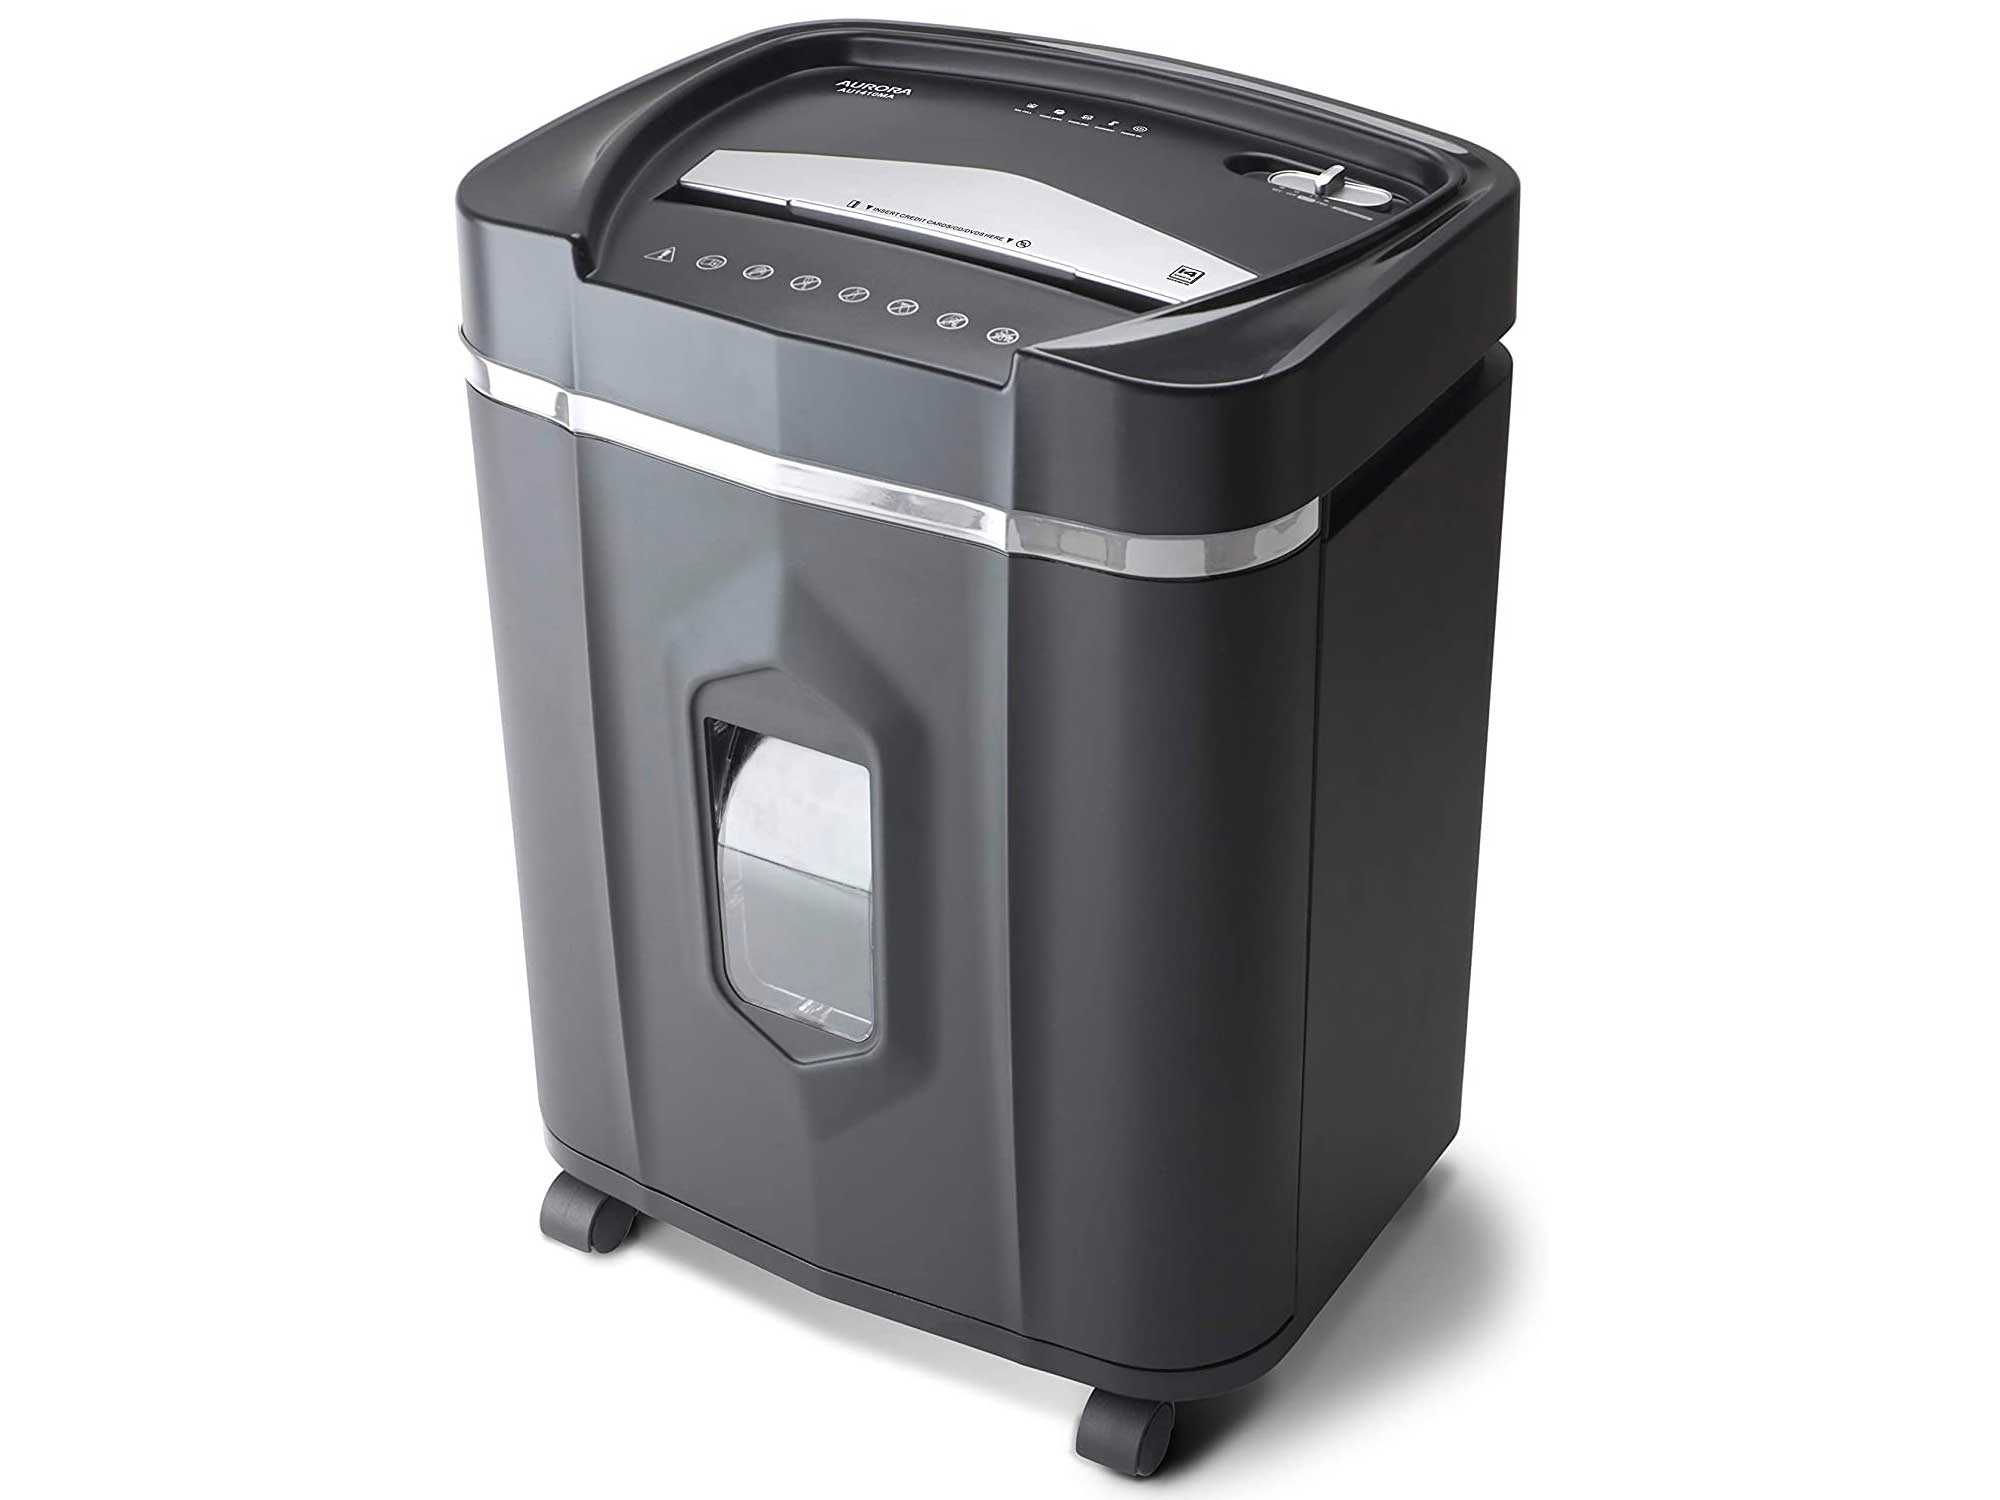 Aurora Professional Grade High Security 12-Sheet Micro-Cut Paper/CD and Credit Card/ 60 Minutes Continuous Run Time Shredder